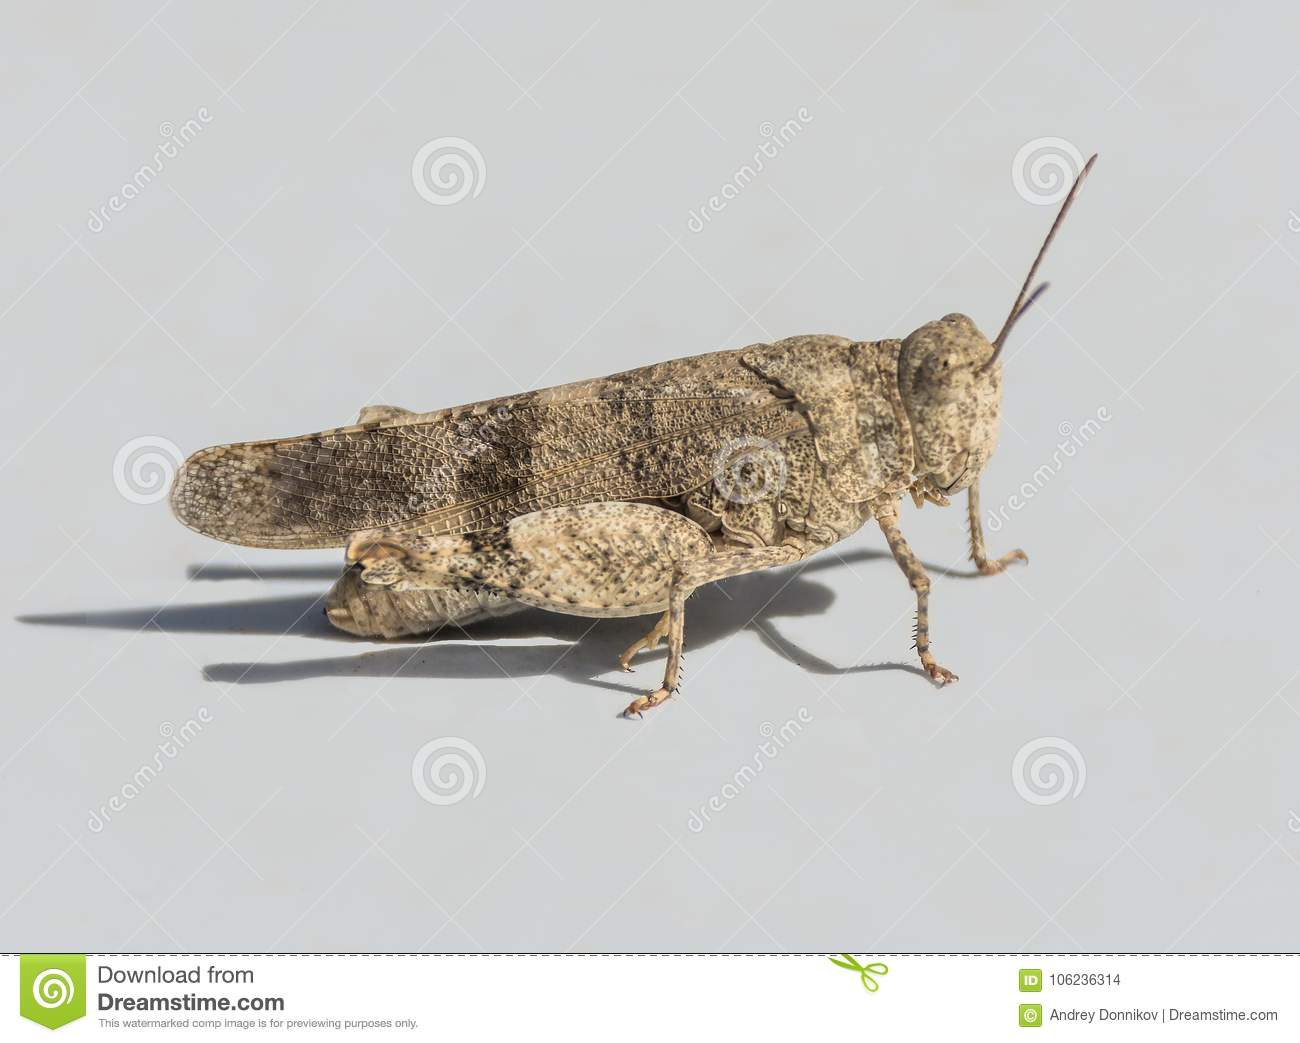 Locust isolated on white background. Side view. Macro.